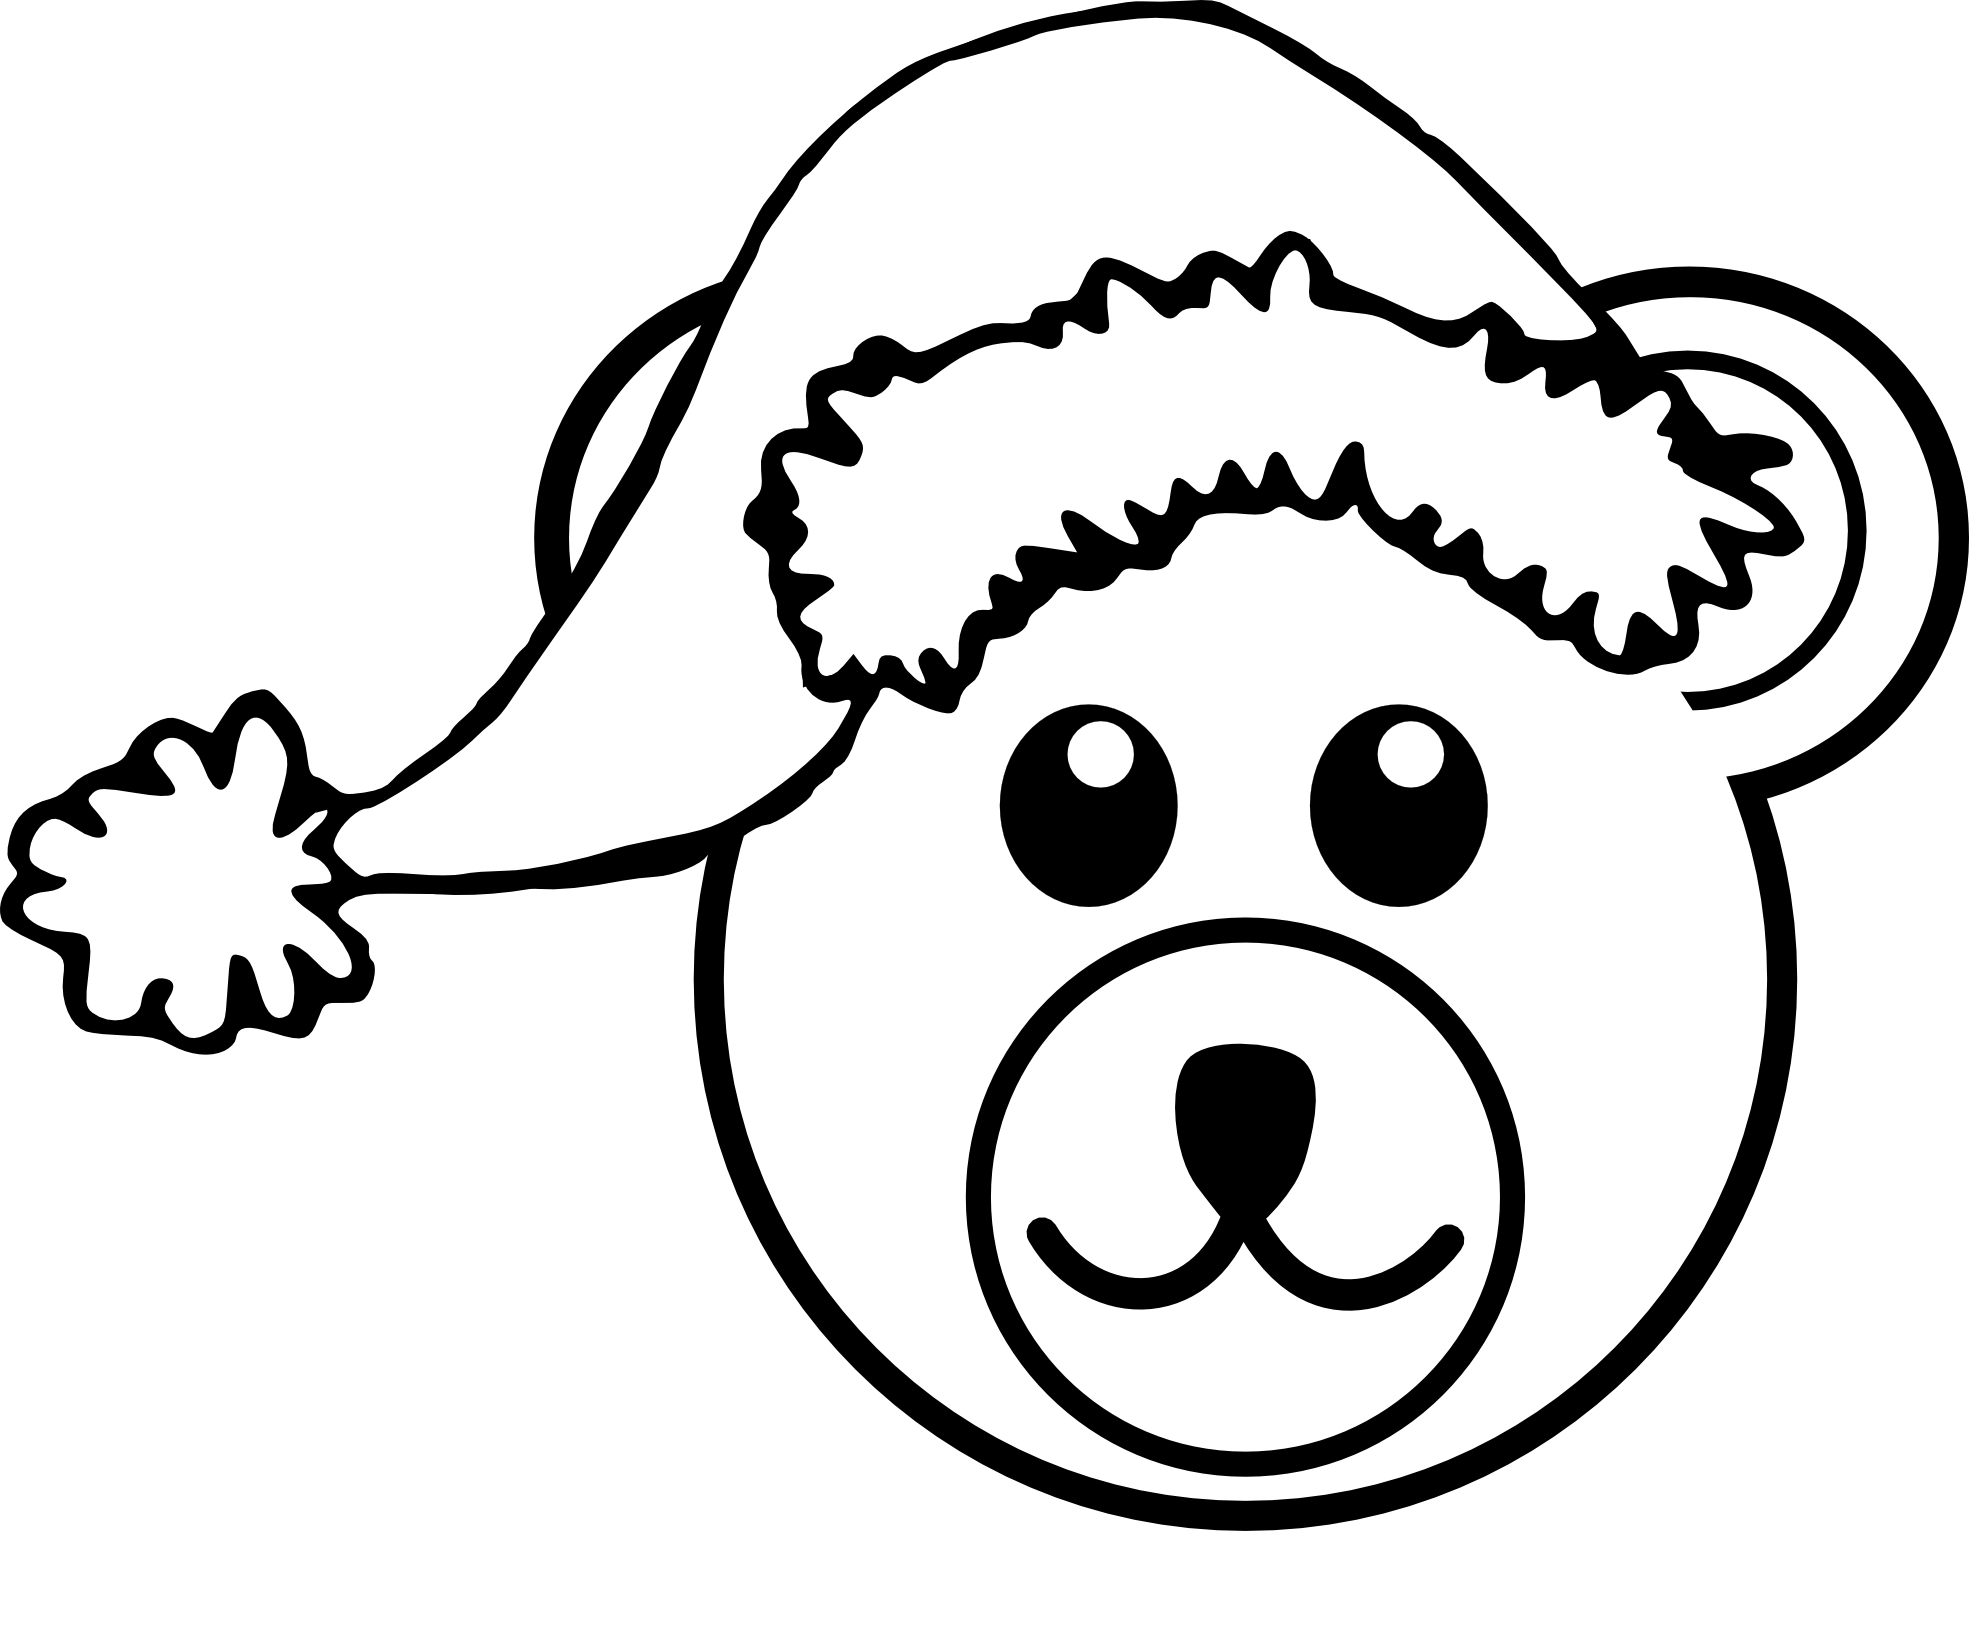 Dog barking clipart black and white graphic download Pirate Hat Clipart Black And White | Clipart Panda - Free Clipart Images graphic download